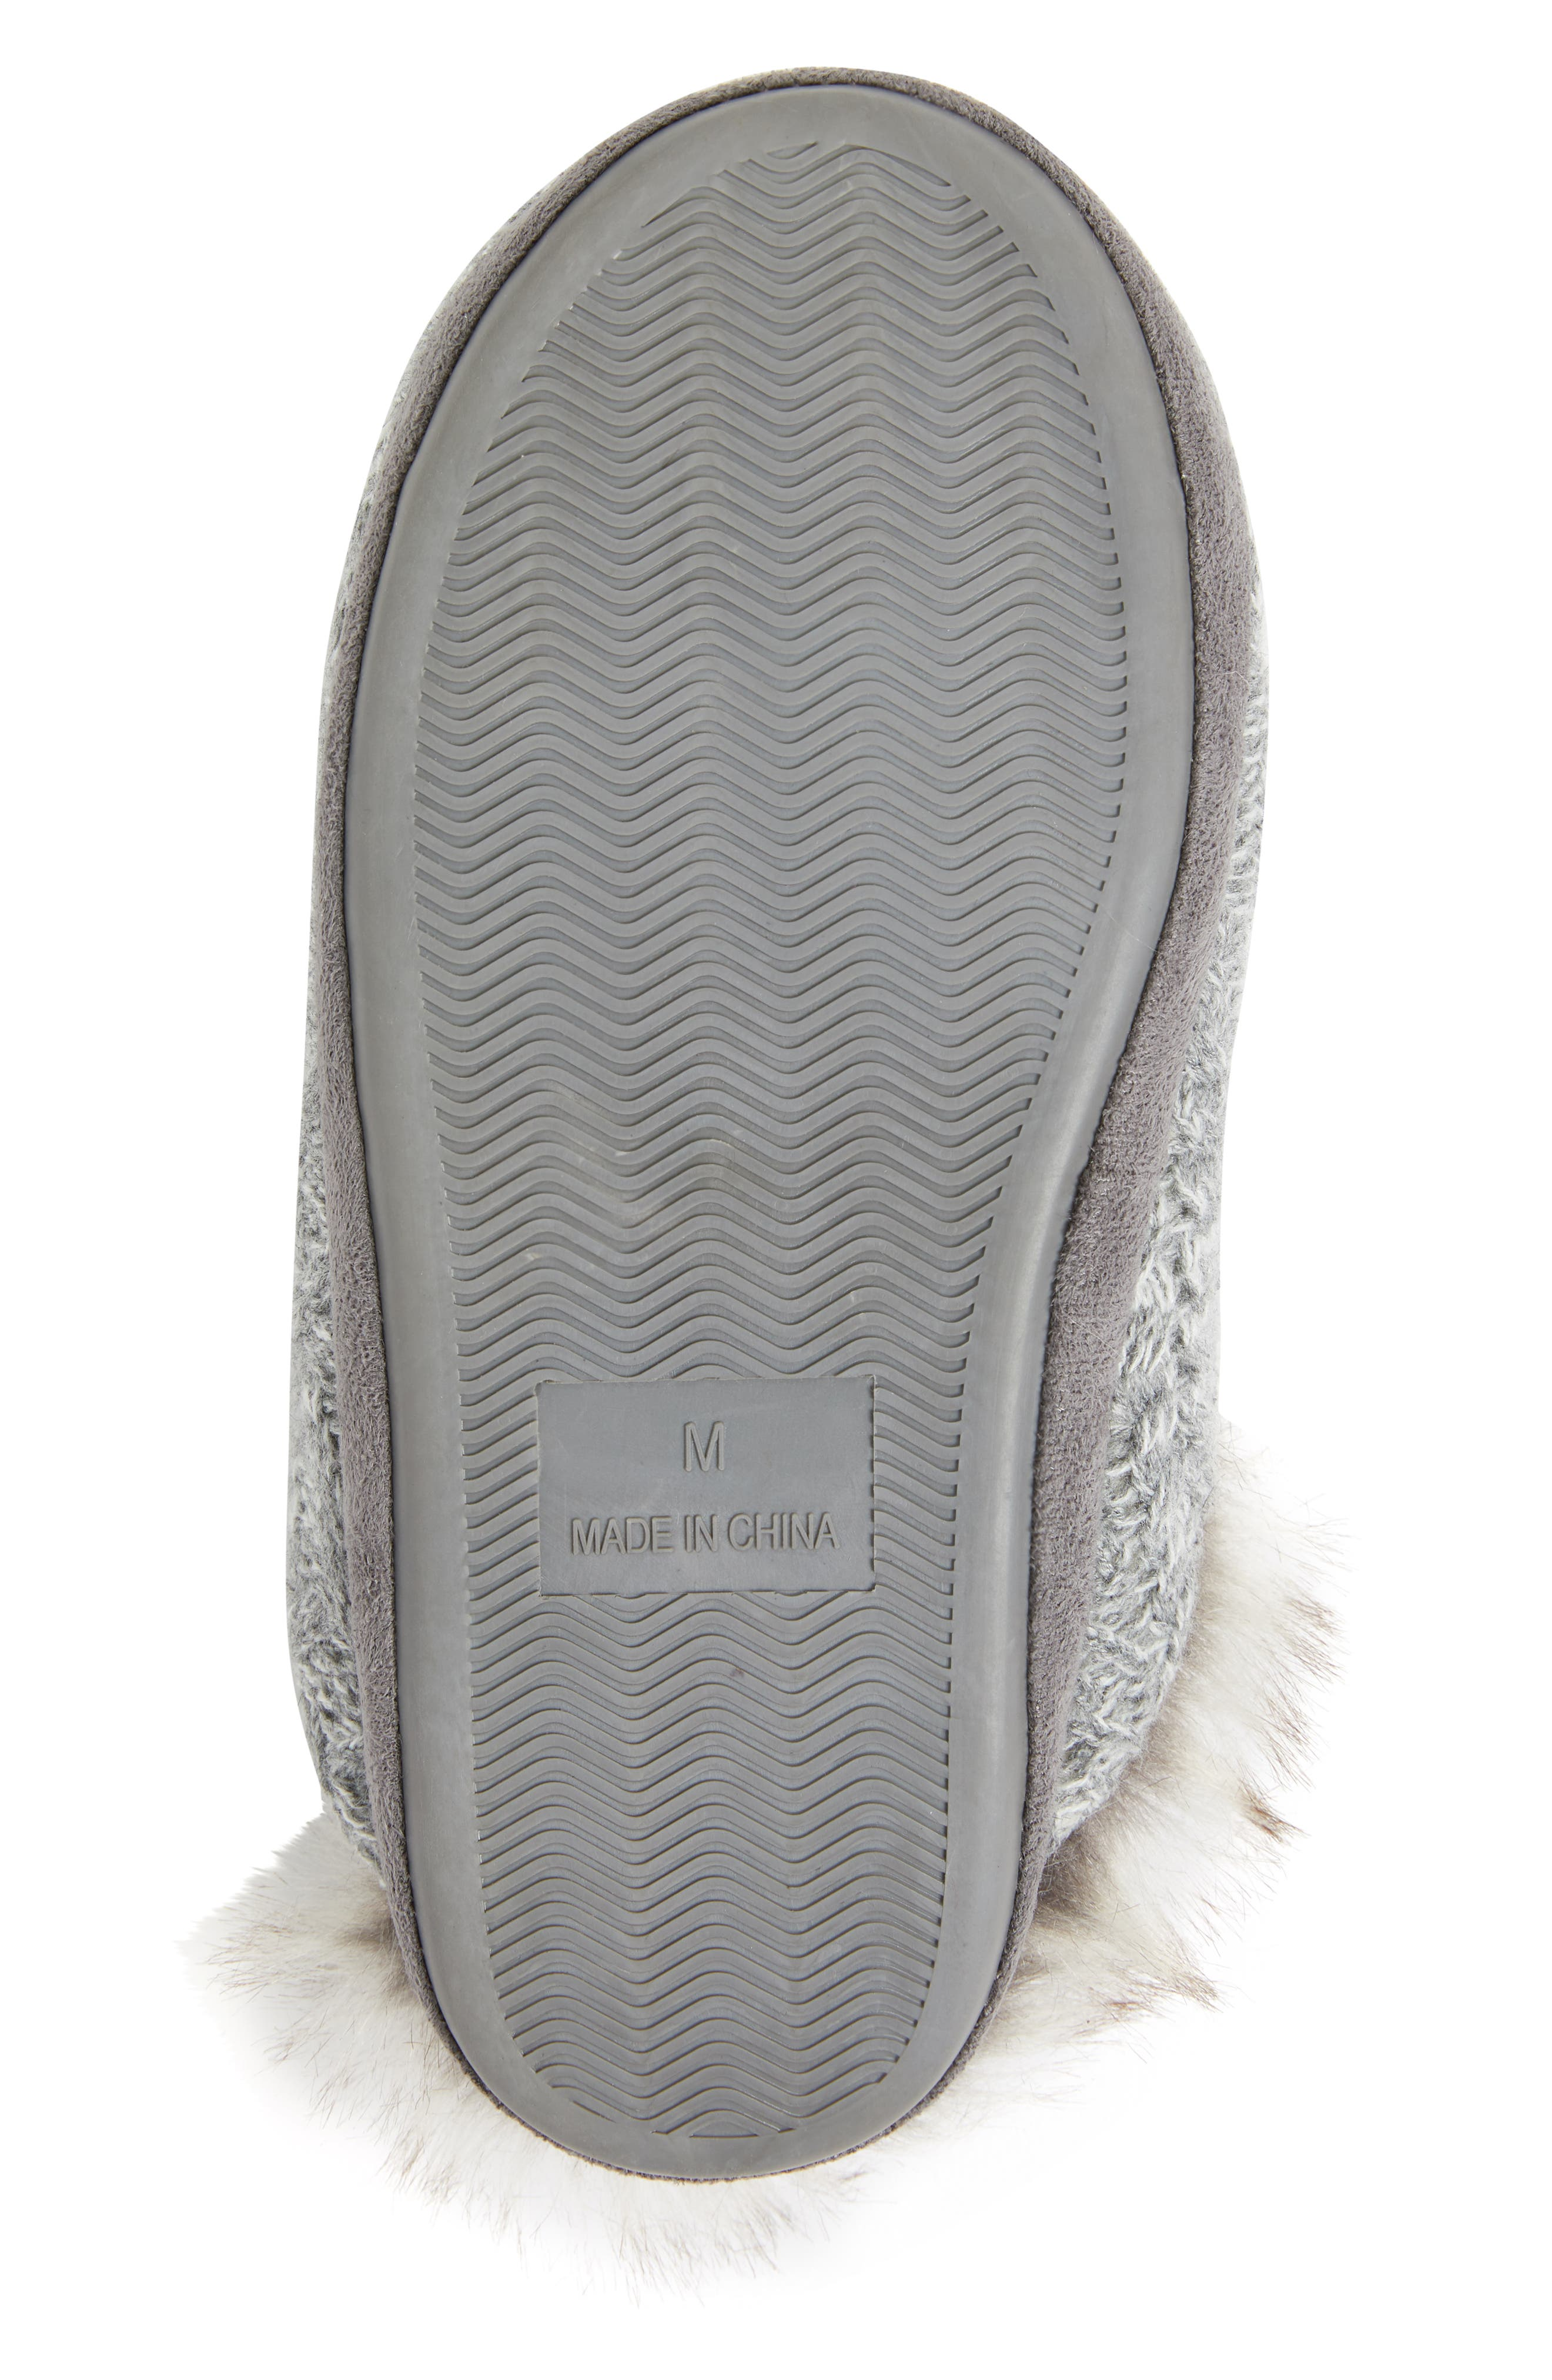 PJ SALVAGE, Faux Fur Trim Cable Knit Slipper, Alternate thumbnail 6, color, HEATHER GREY